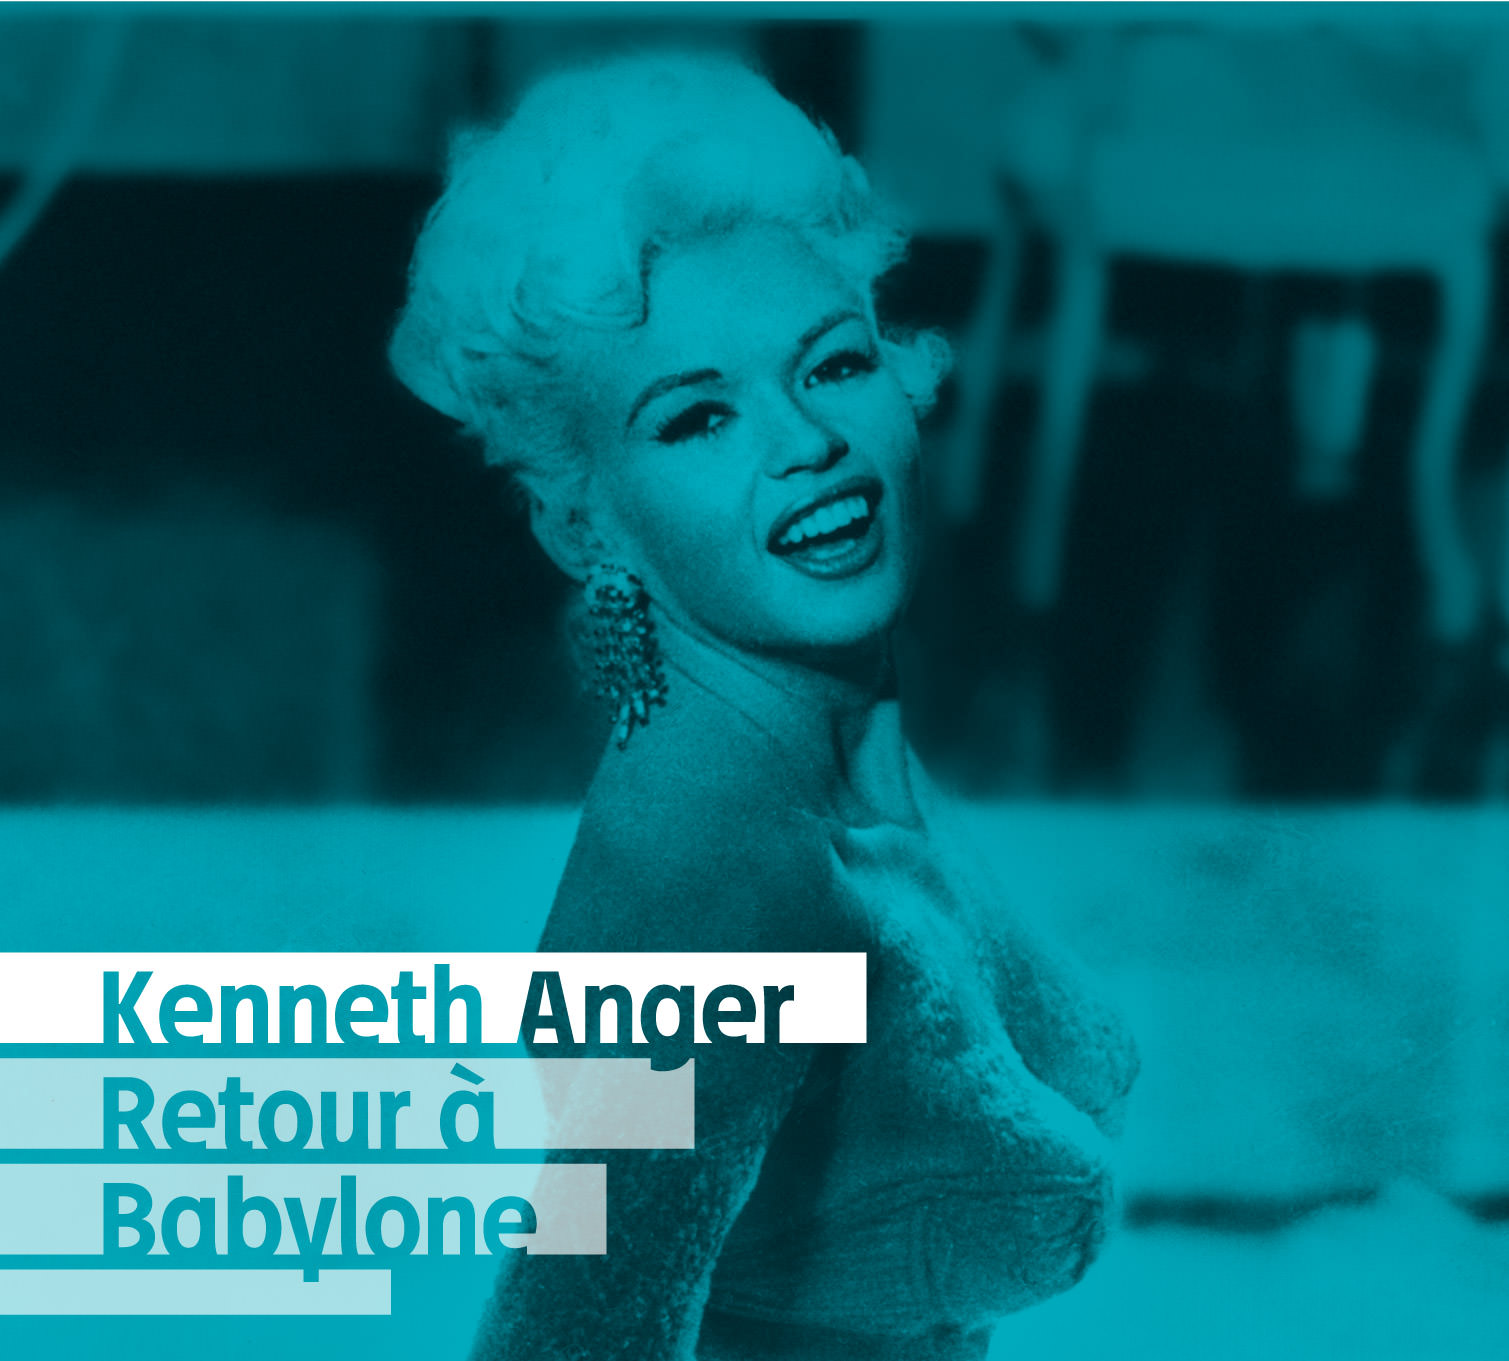 Hollywood's nefarious chronicle by  the filmmaker Kenneth Anger